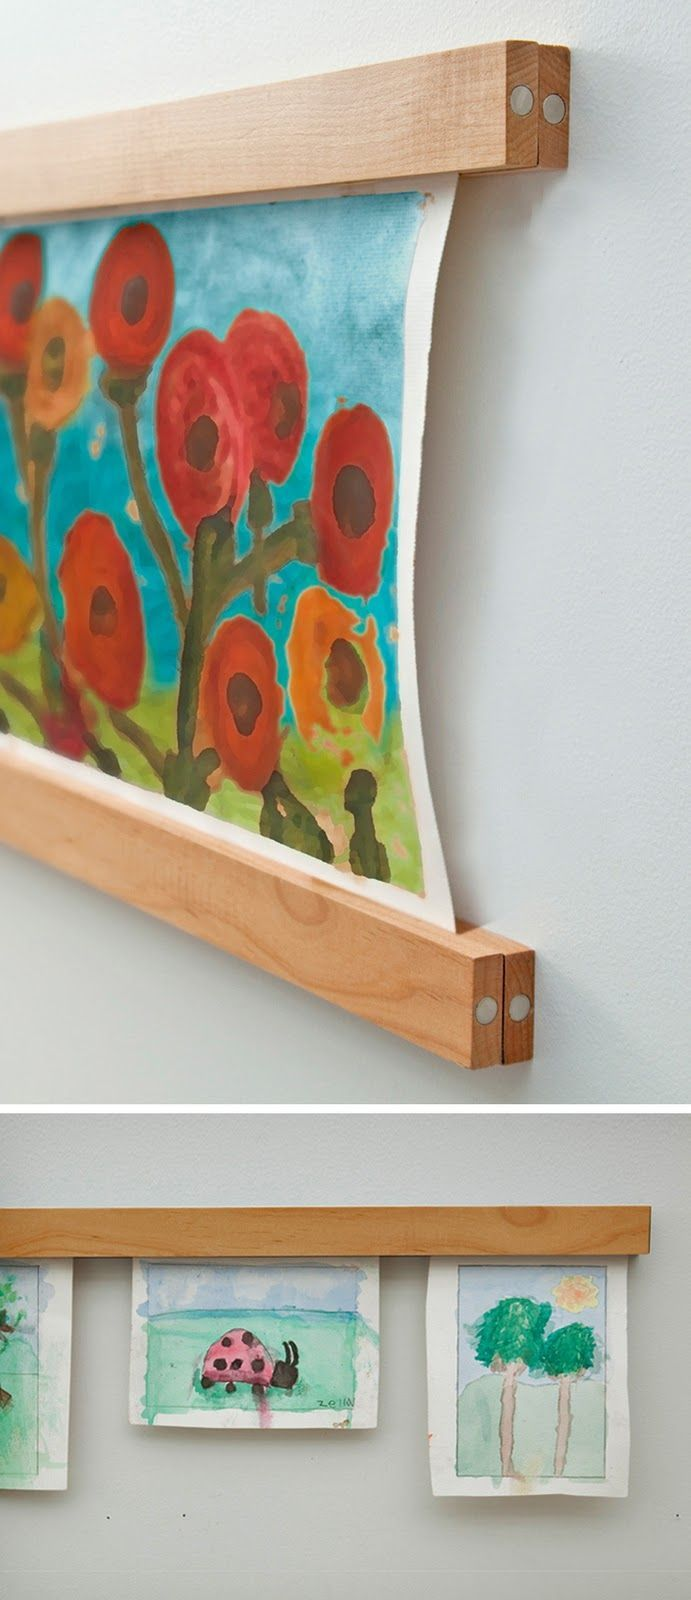 Magnetic frames for displaying art work